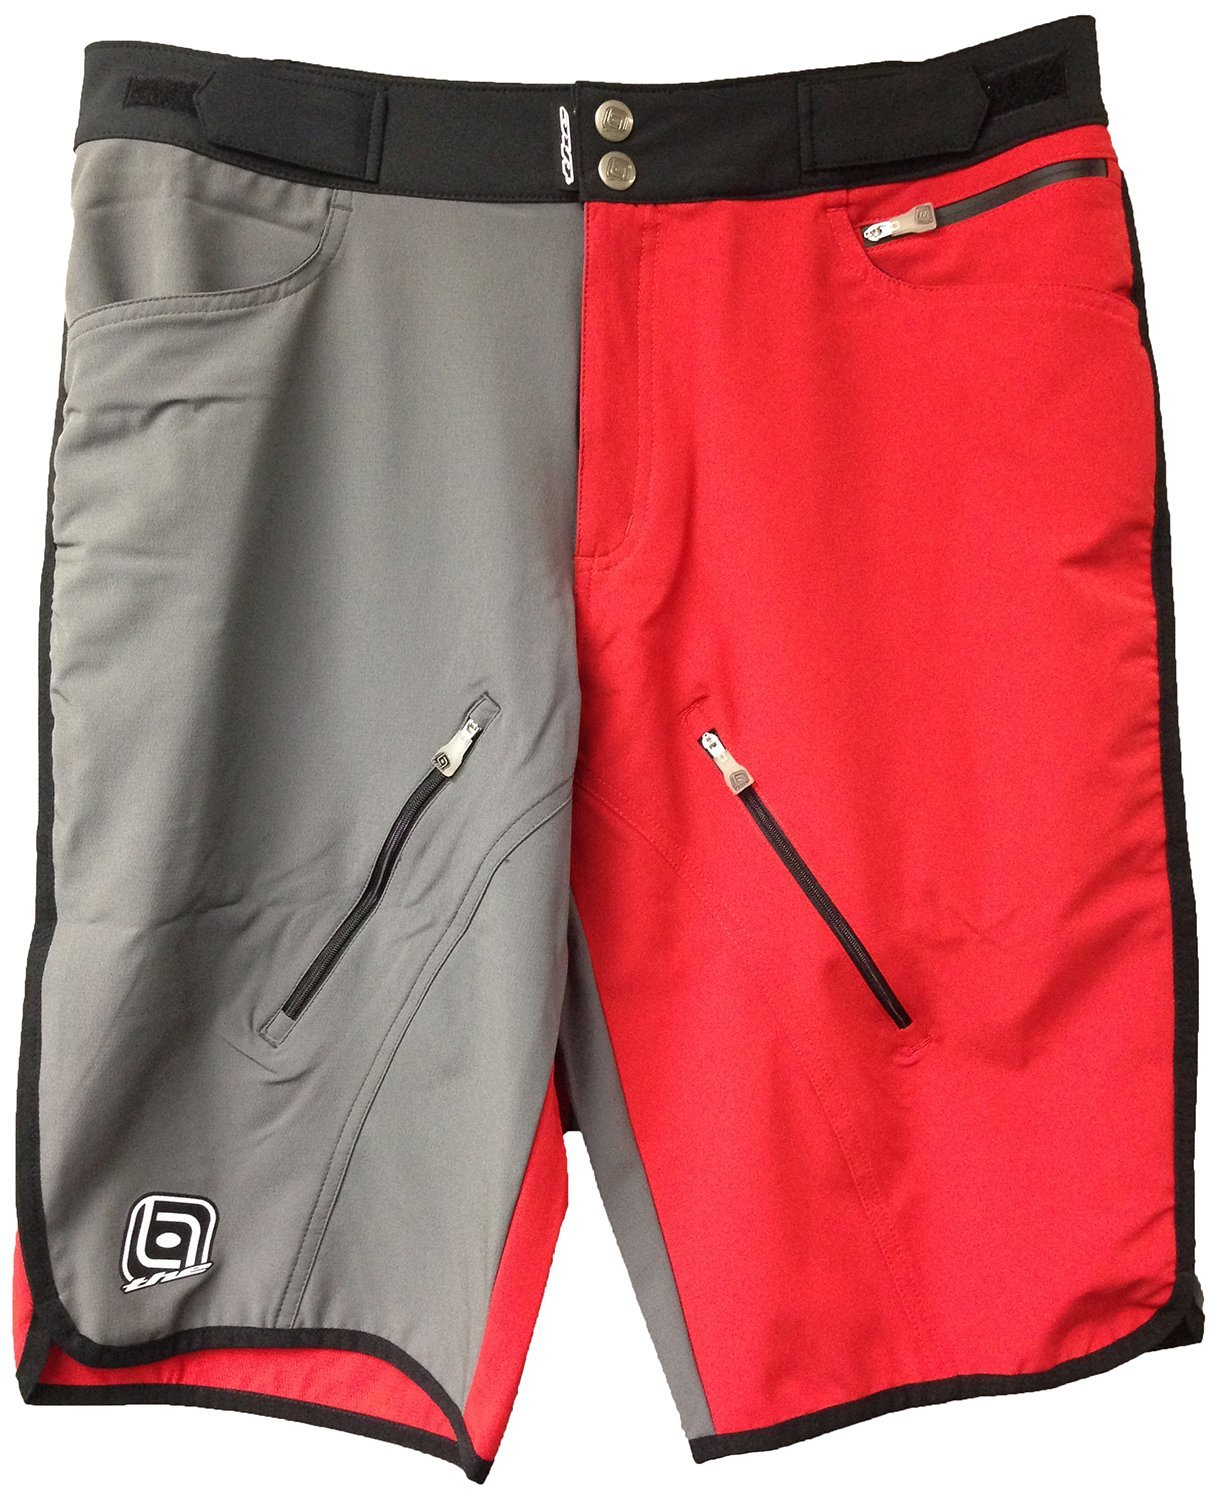 ae5fea6f7 Get Quotations · THE Industries Scallop Mountain Bike Shorts